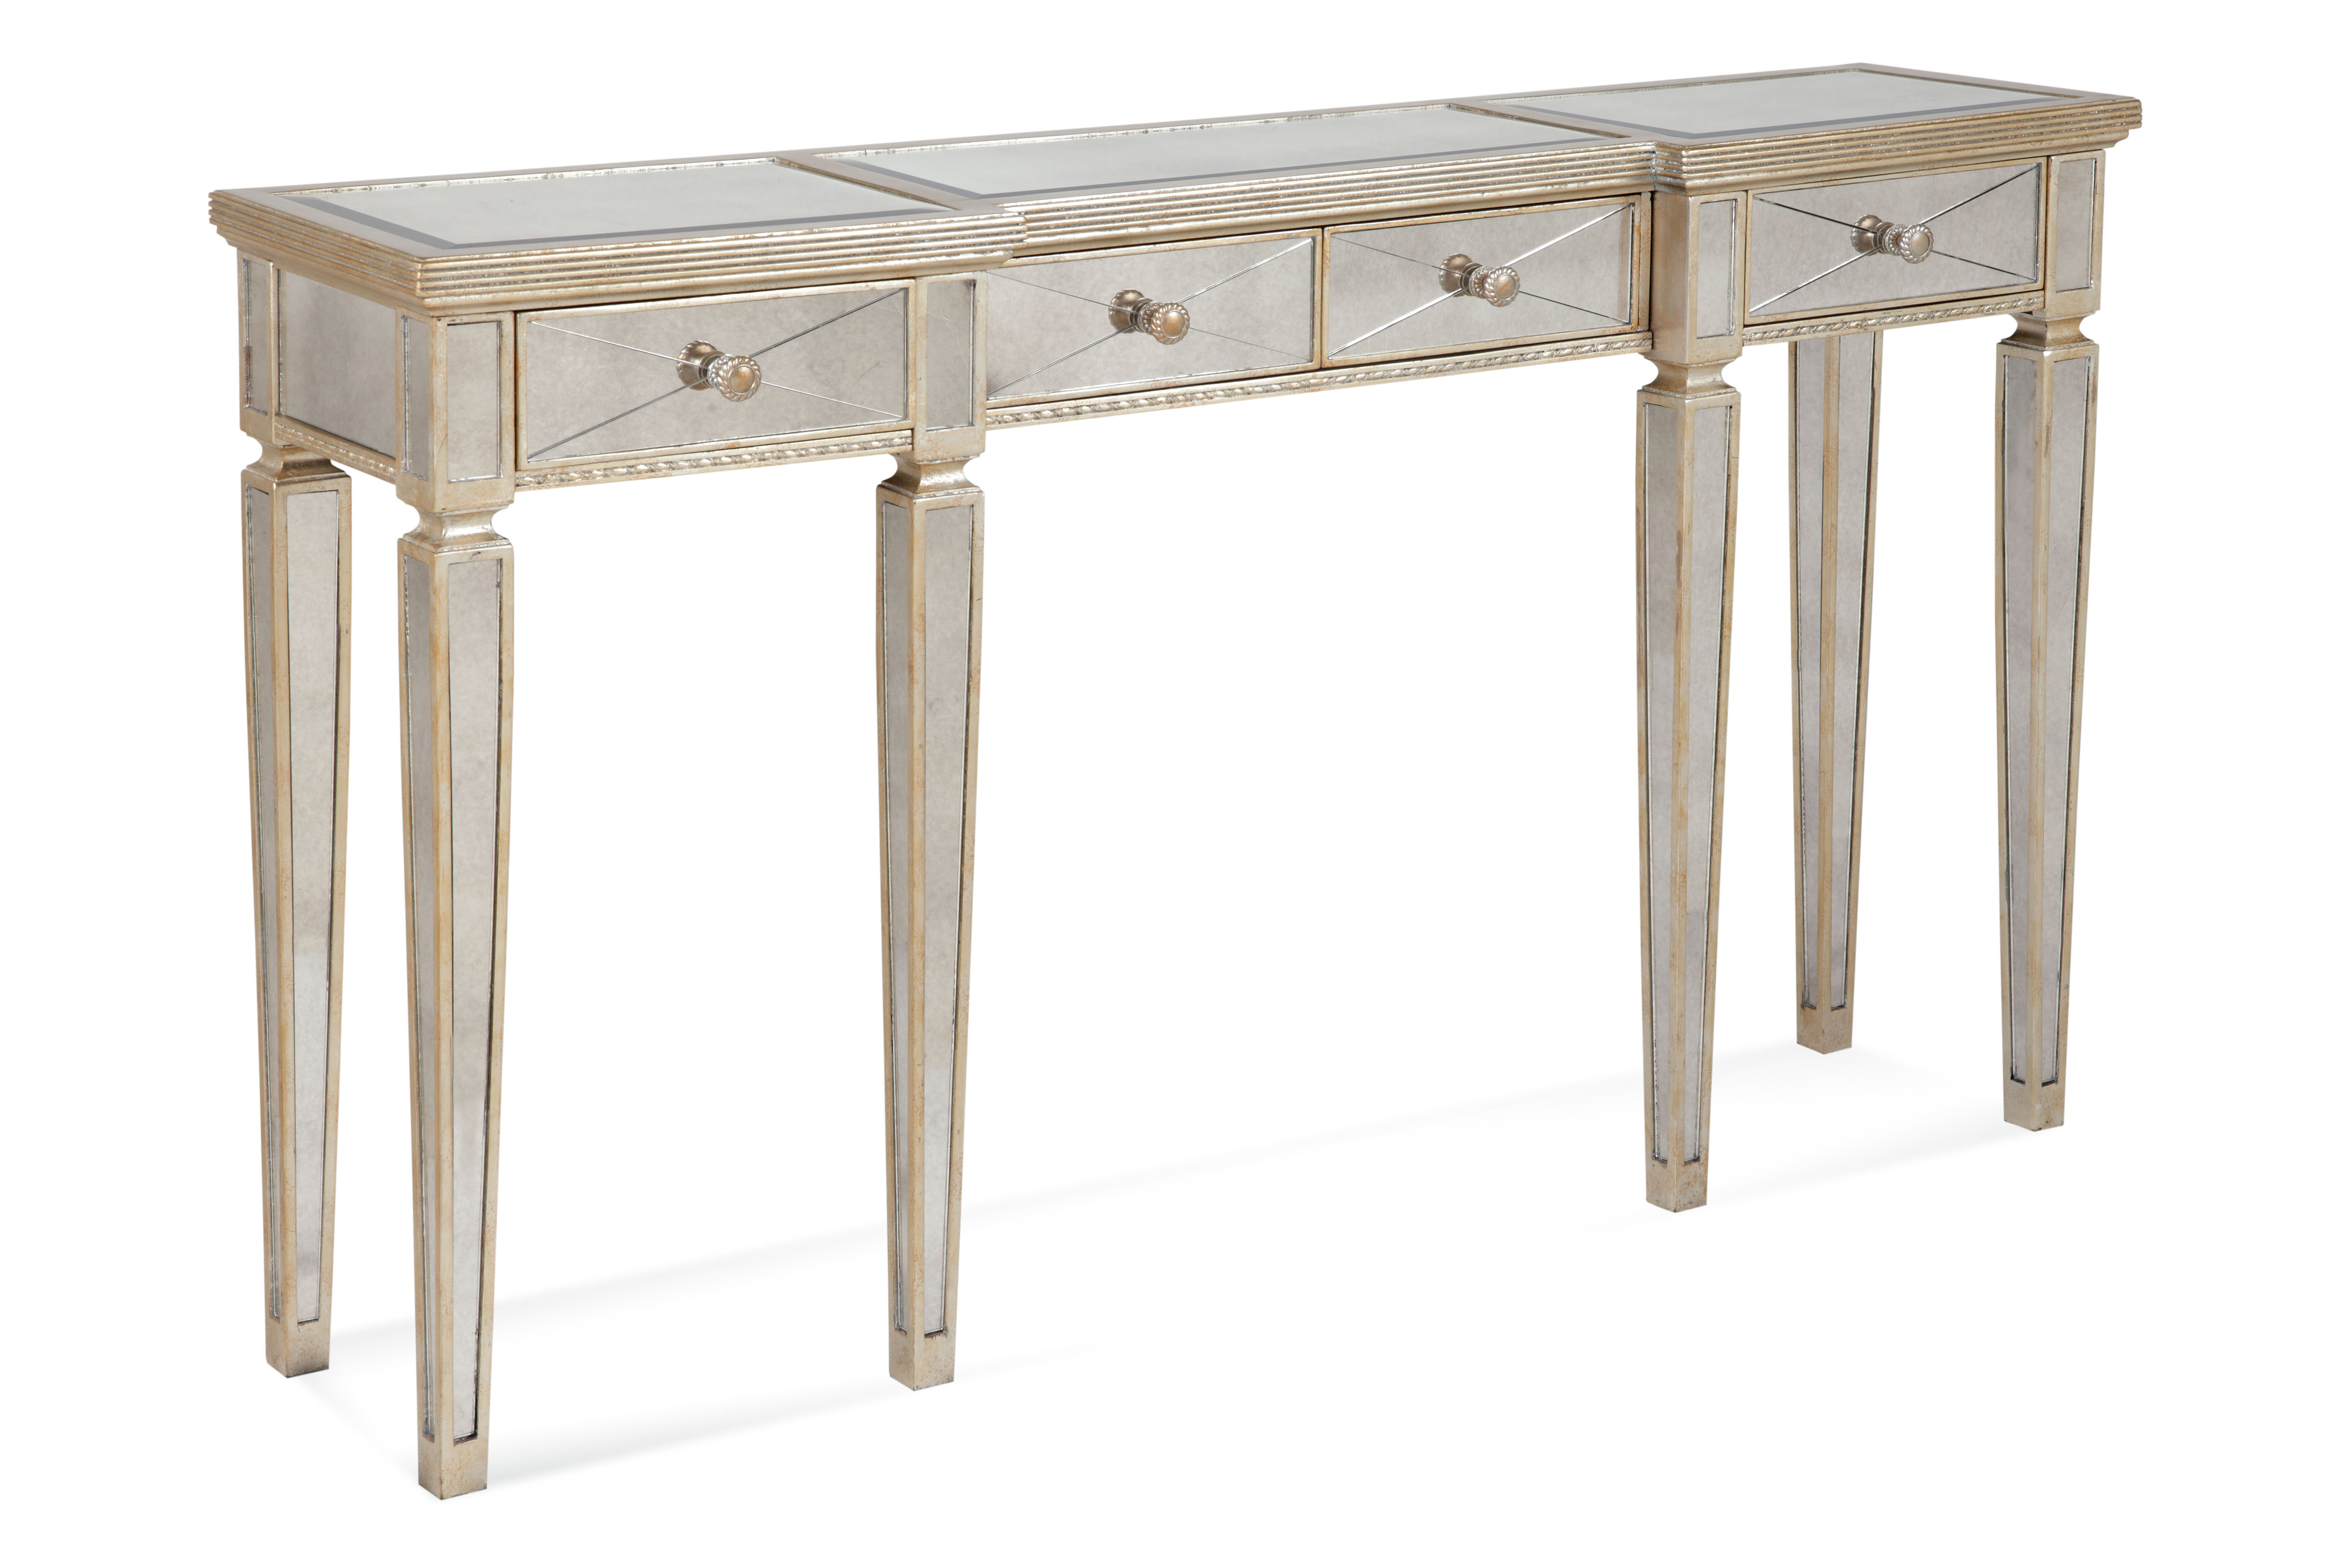 Willa Arlo Interiors Roehl Mirrored Console Table With Drawers Reviews Wayfair